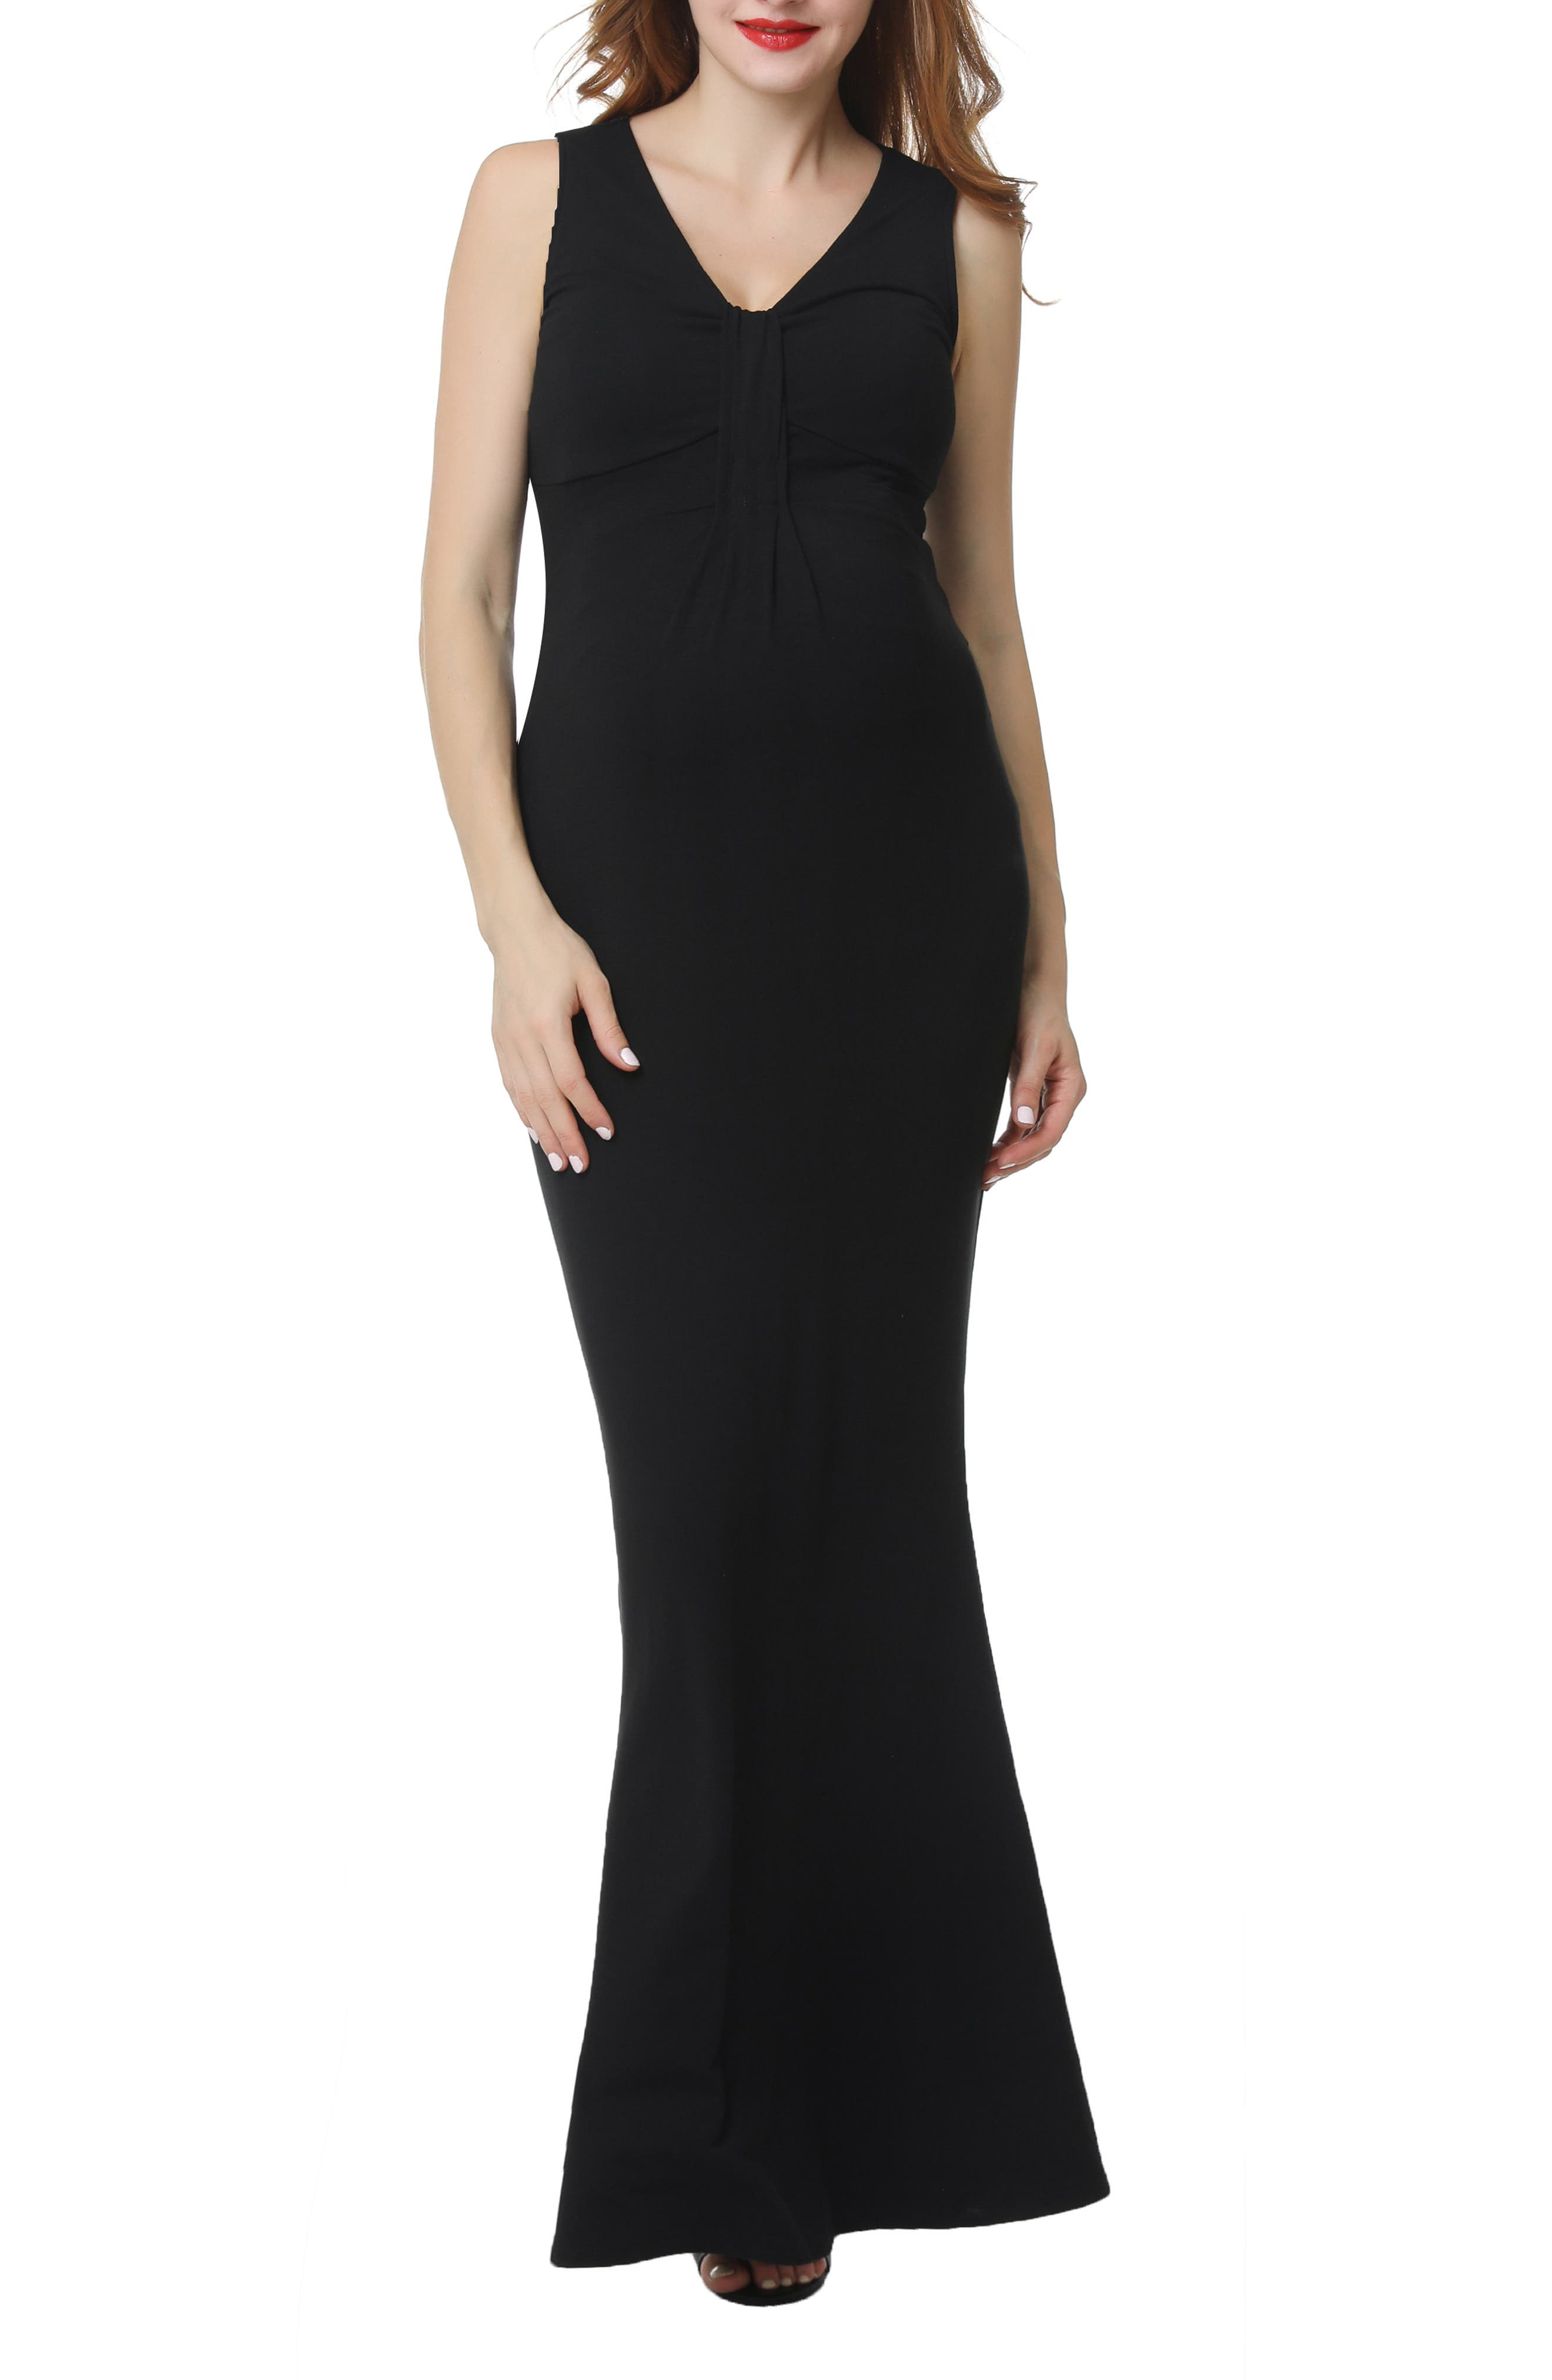 Impeccable ruching accentuates the bump-flattering fit of this mermaid gown that\\\'s ready for all your RSVPs this season. Style Name: Kimi And Kai Edrei Maternity Mermaid Gown. Style Number: 5719586. Available in stores.